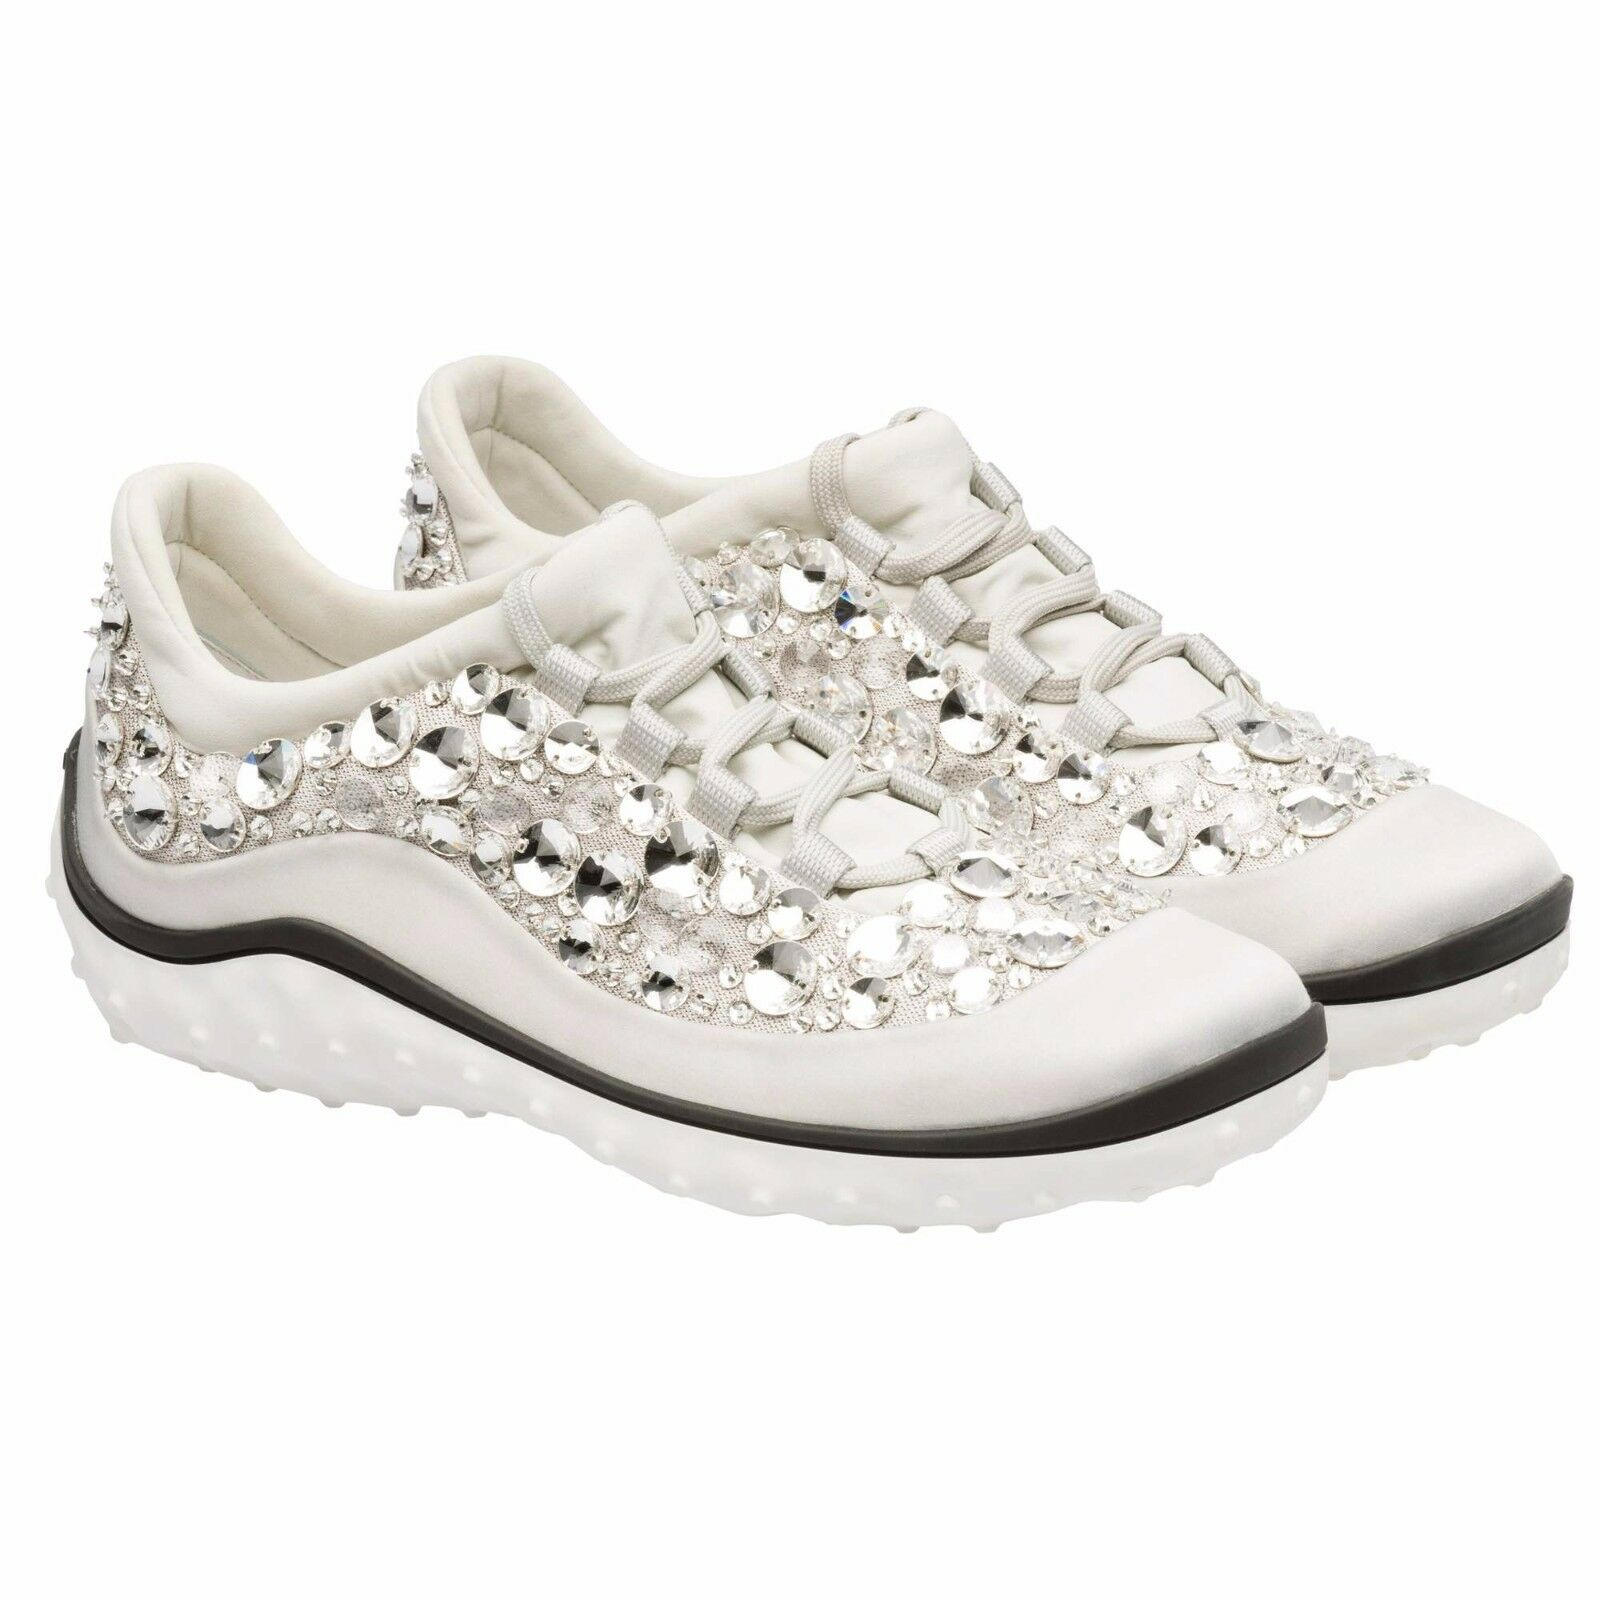 $3250 MIU MIU WOMEN WHITE CRYSTAL ATHLETIC RUNNING TENNIS SNEAKERS SHOES 41 10.5